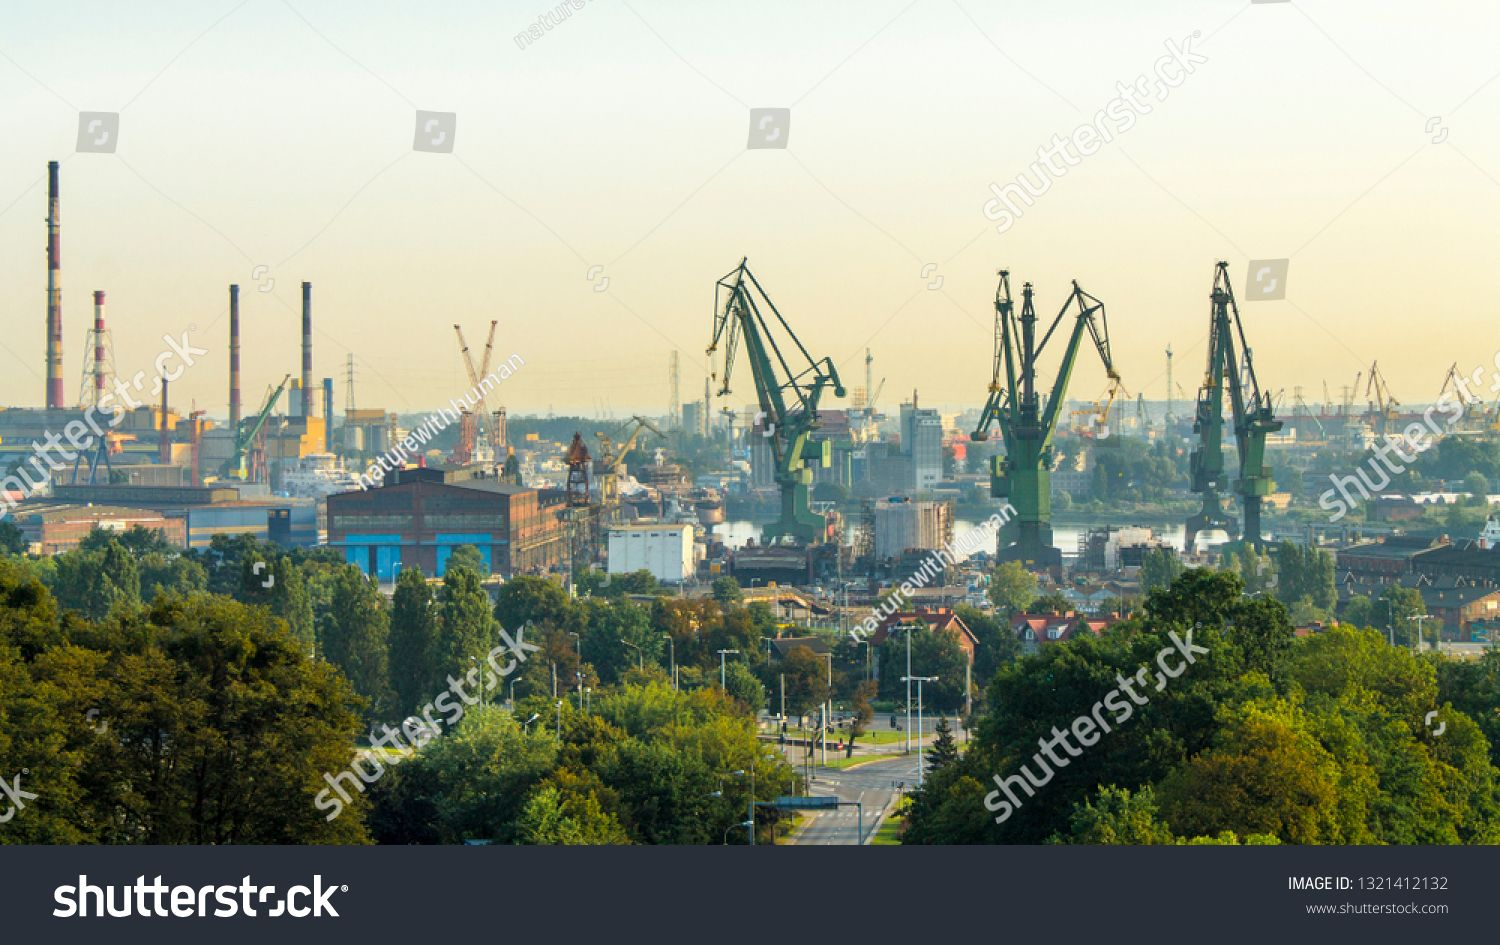 View Of The Shipyard And Port Industry Part Of The City Of